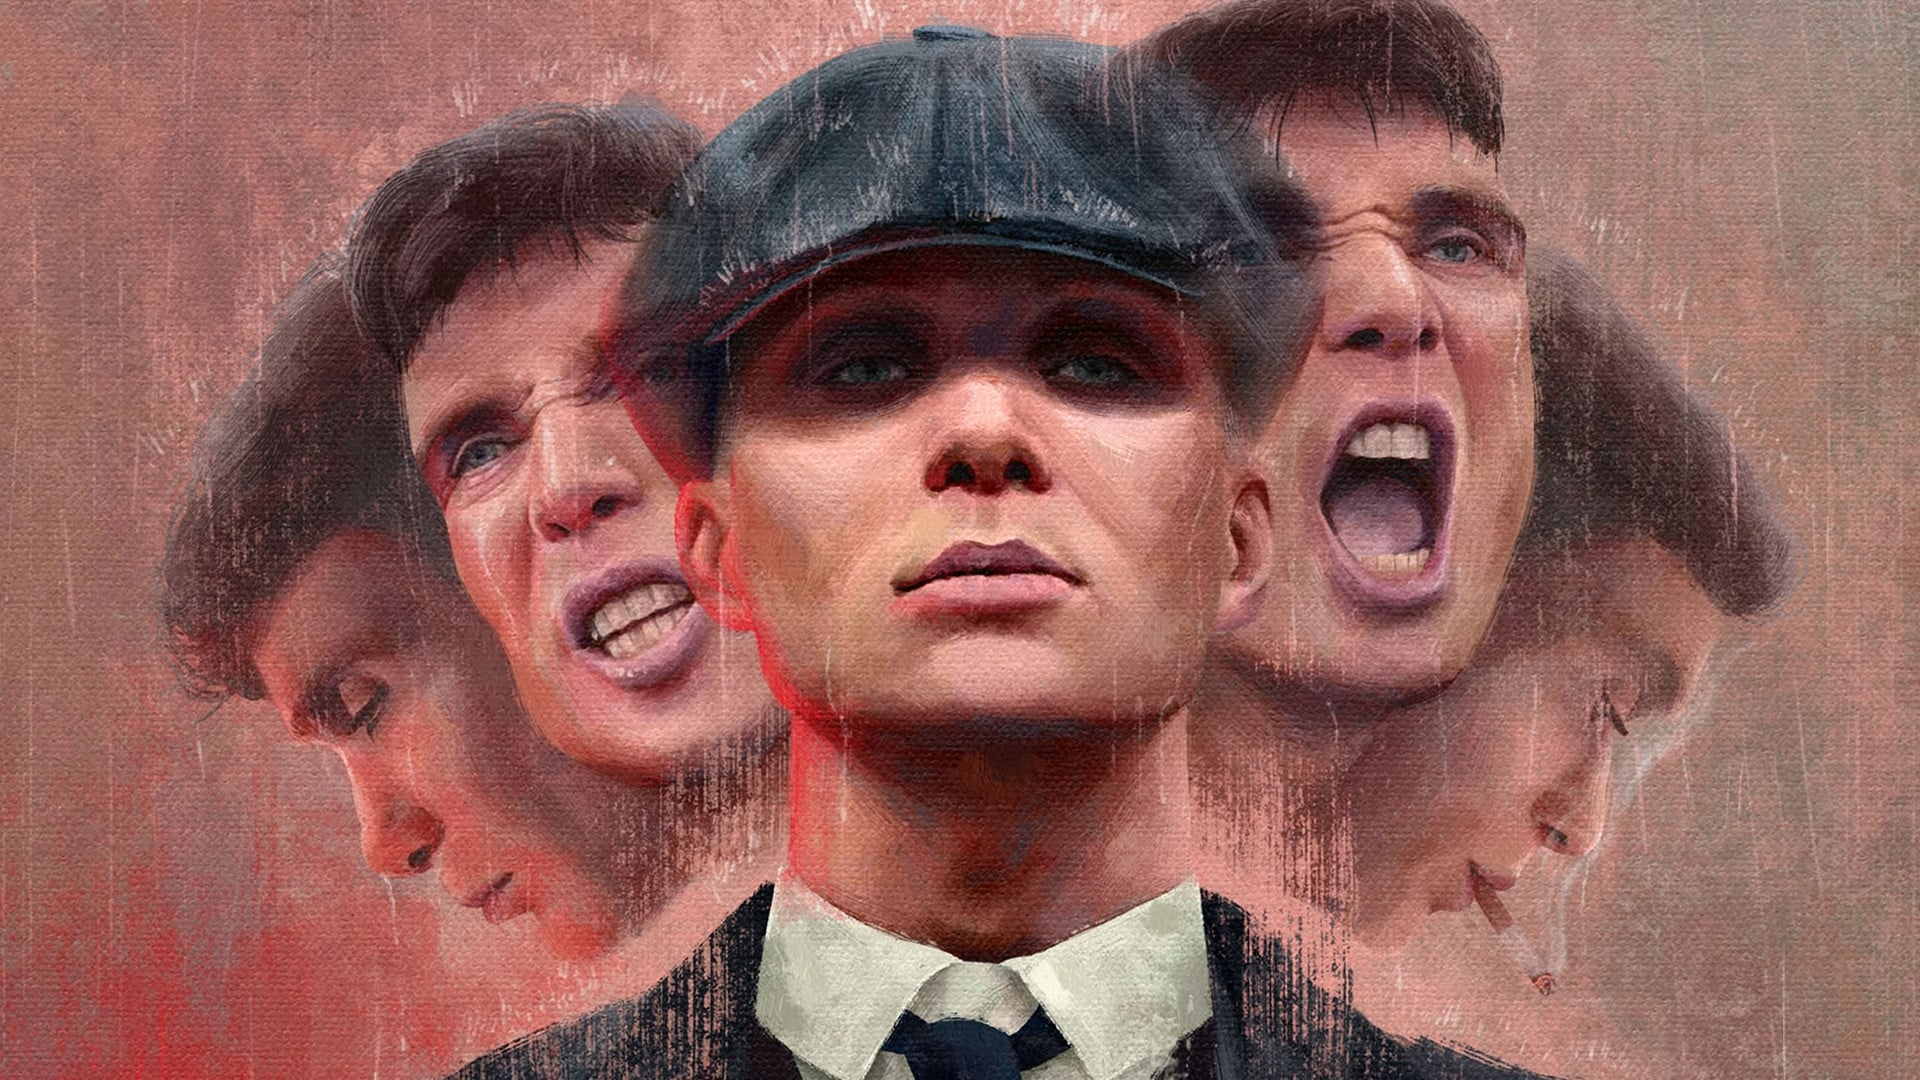 Peaky Blinders - Series 5